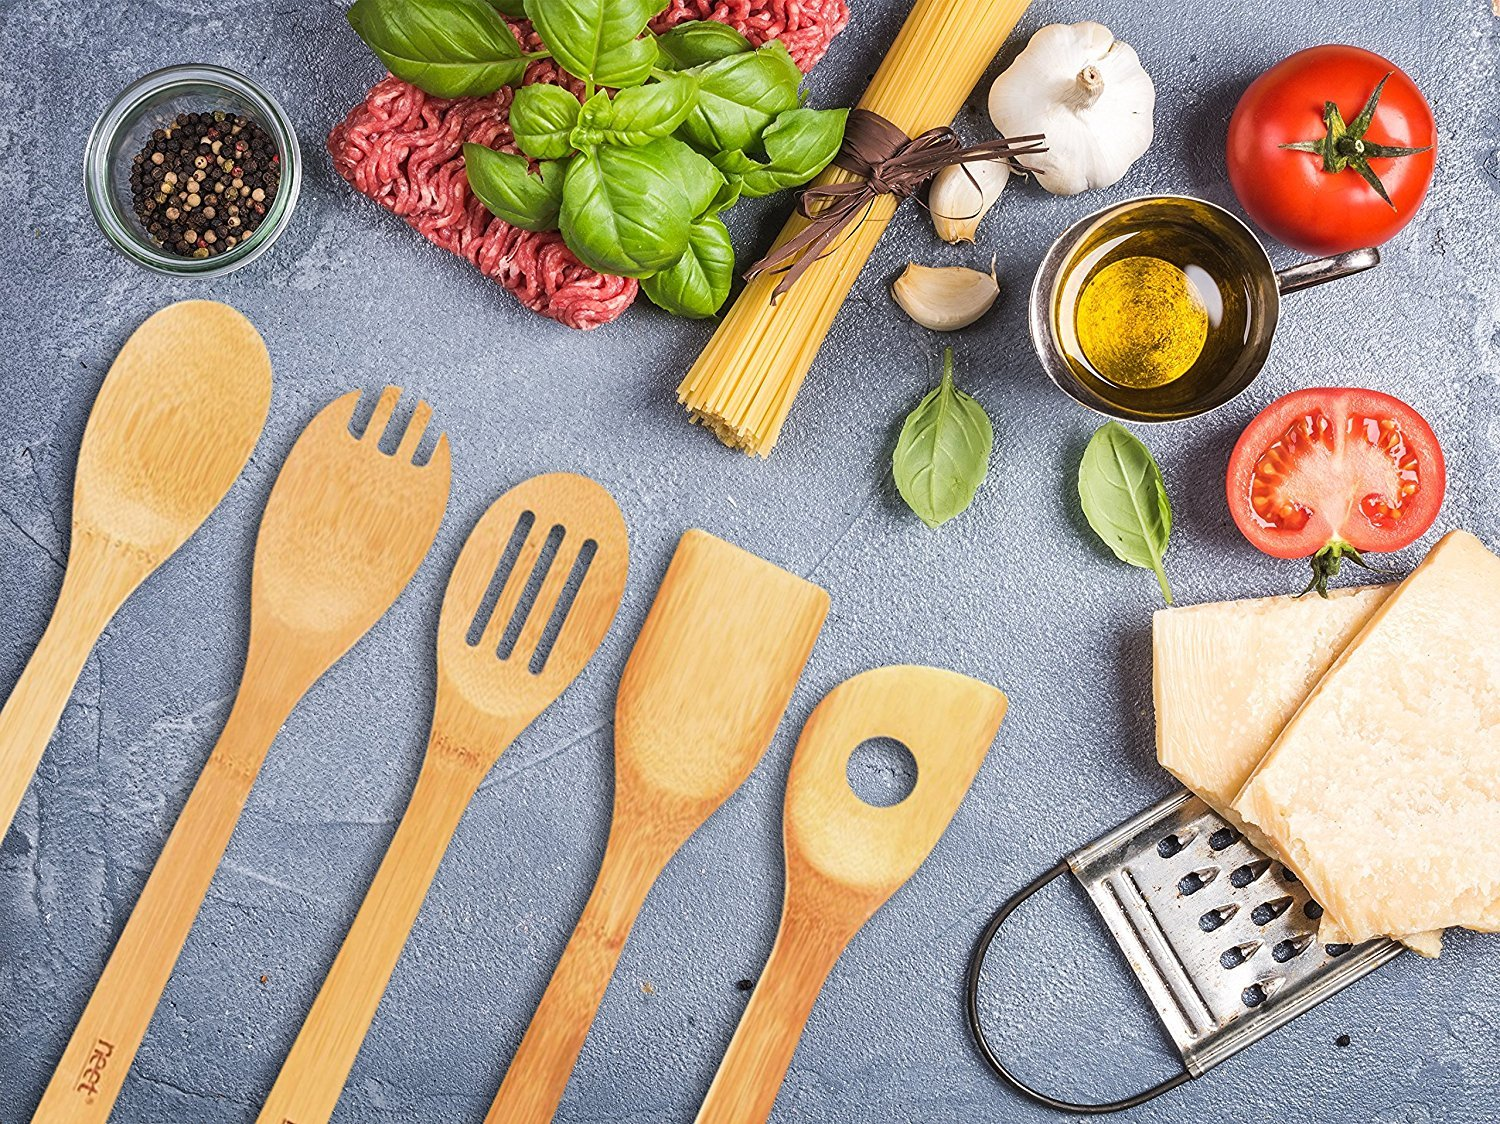 Neet Organic Bamboo Cooking and Serving Utensils